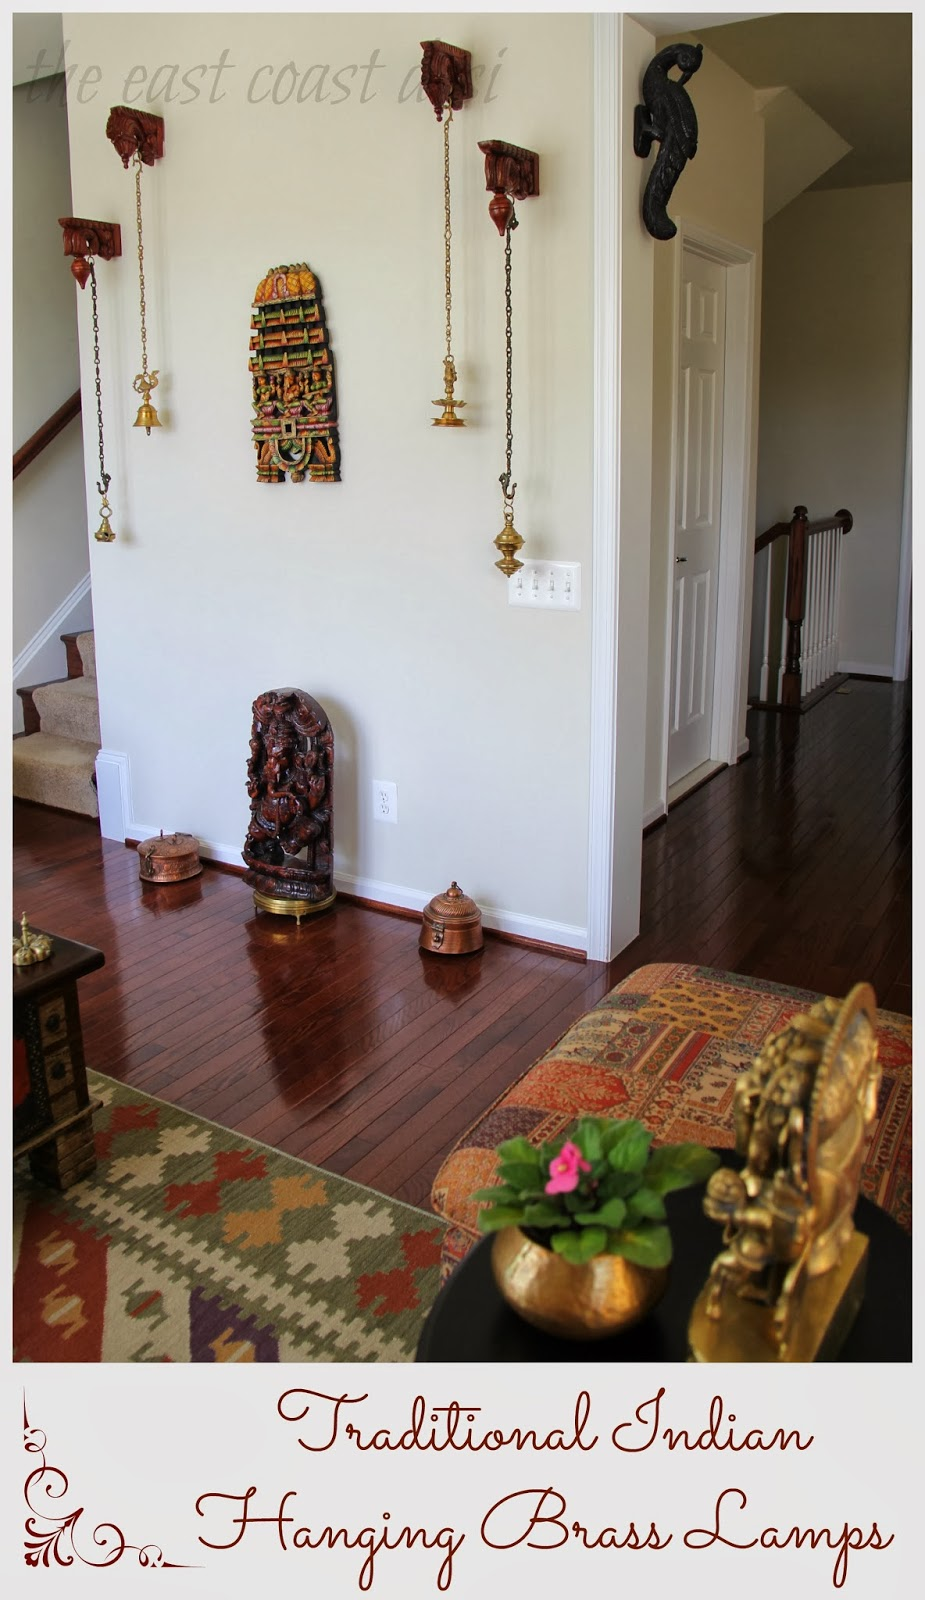 The east coast desi my living room a reflection of india diwali inspiration day 3 - Indian home decor online style ...